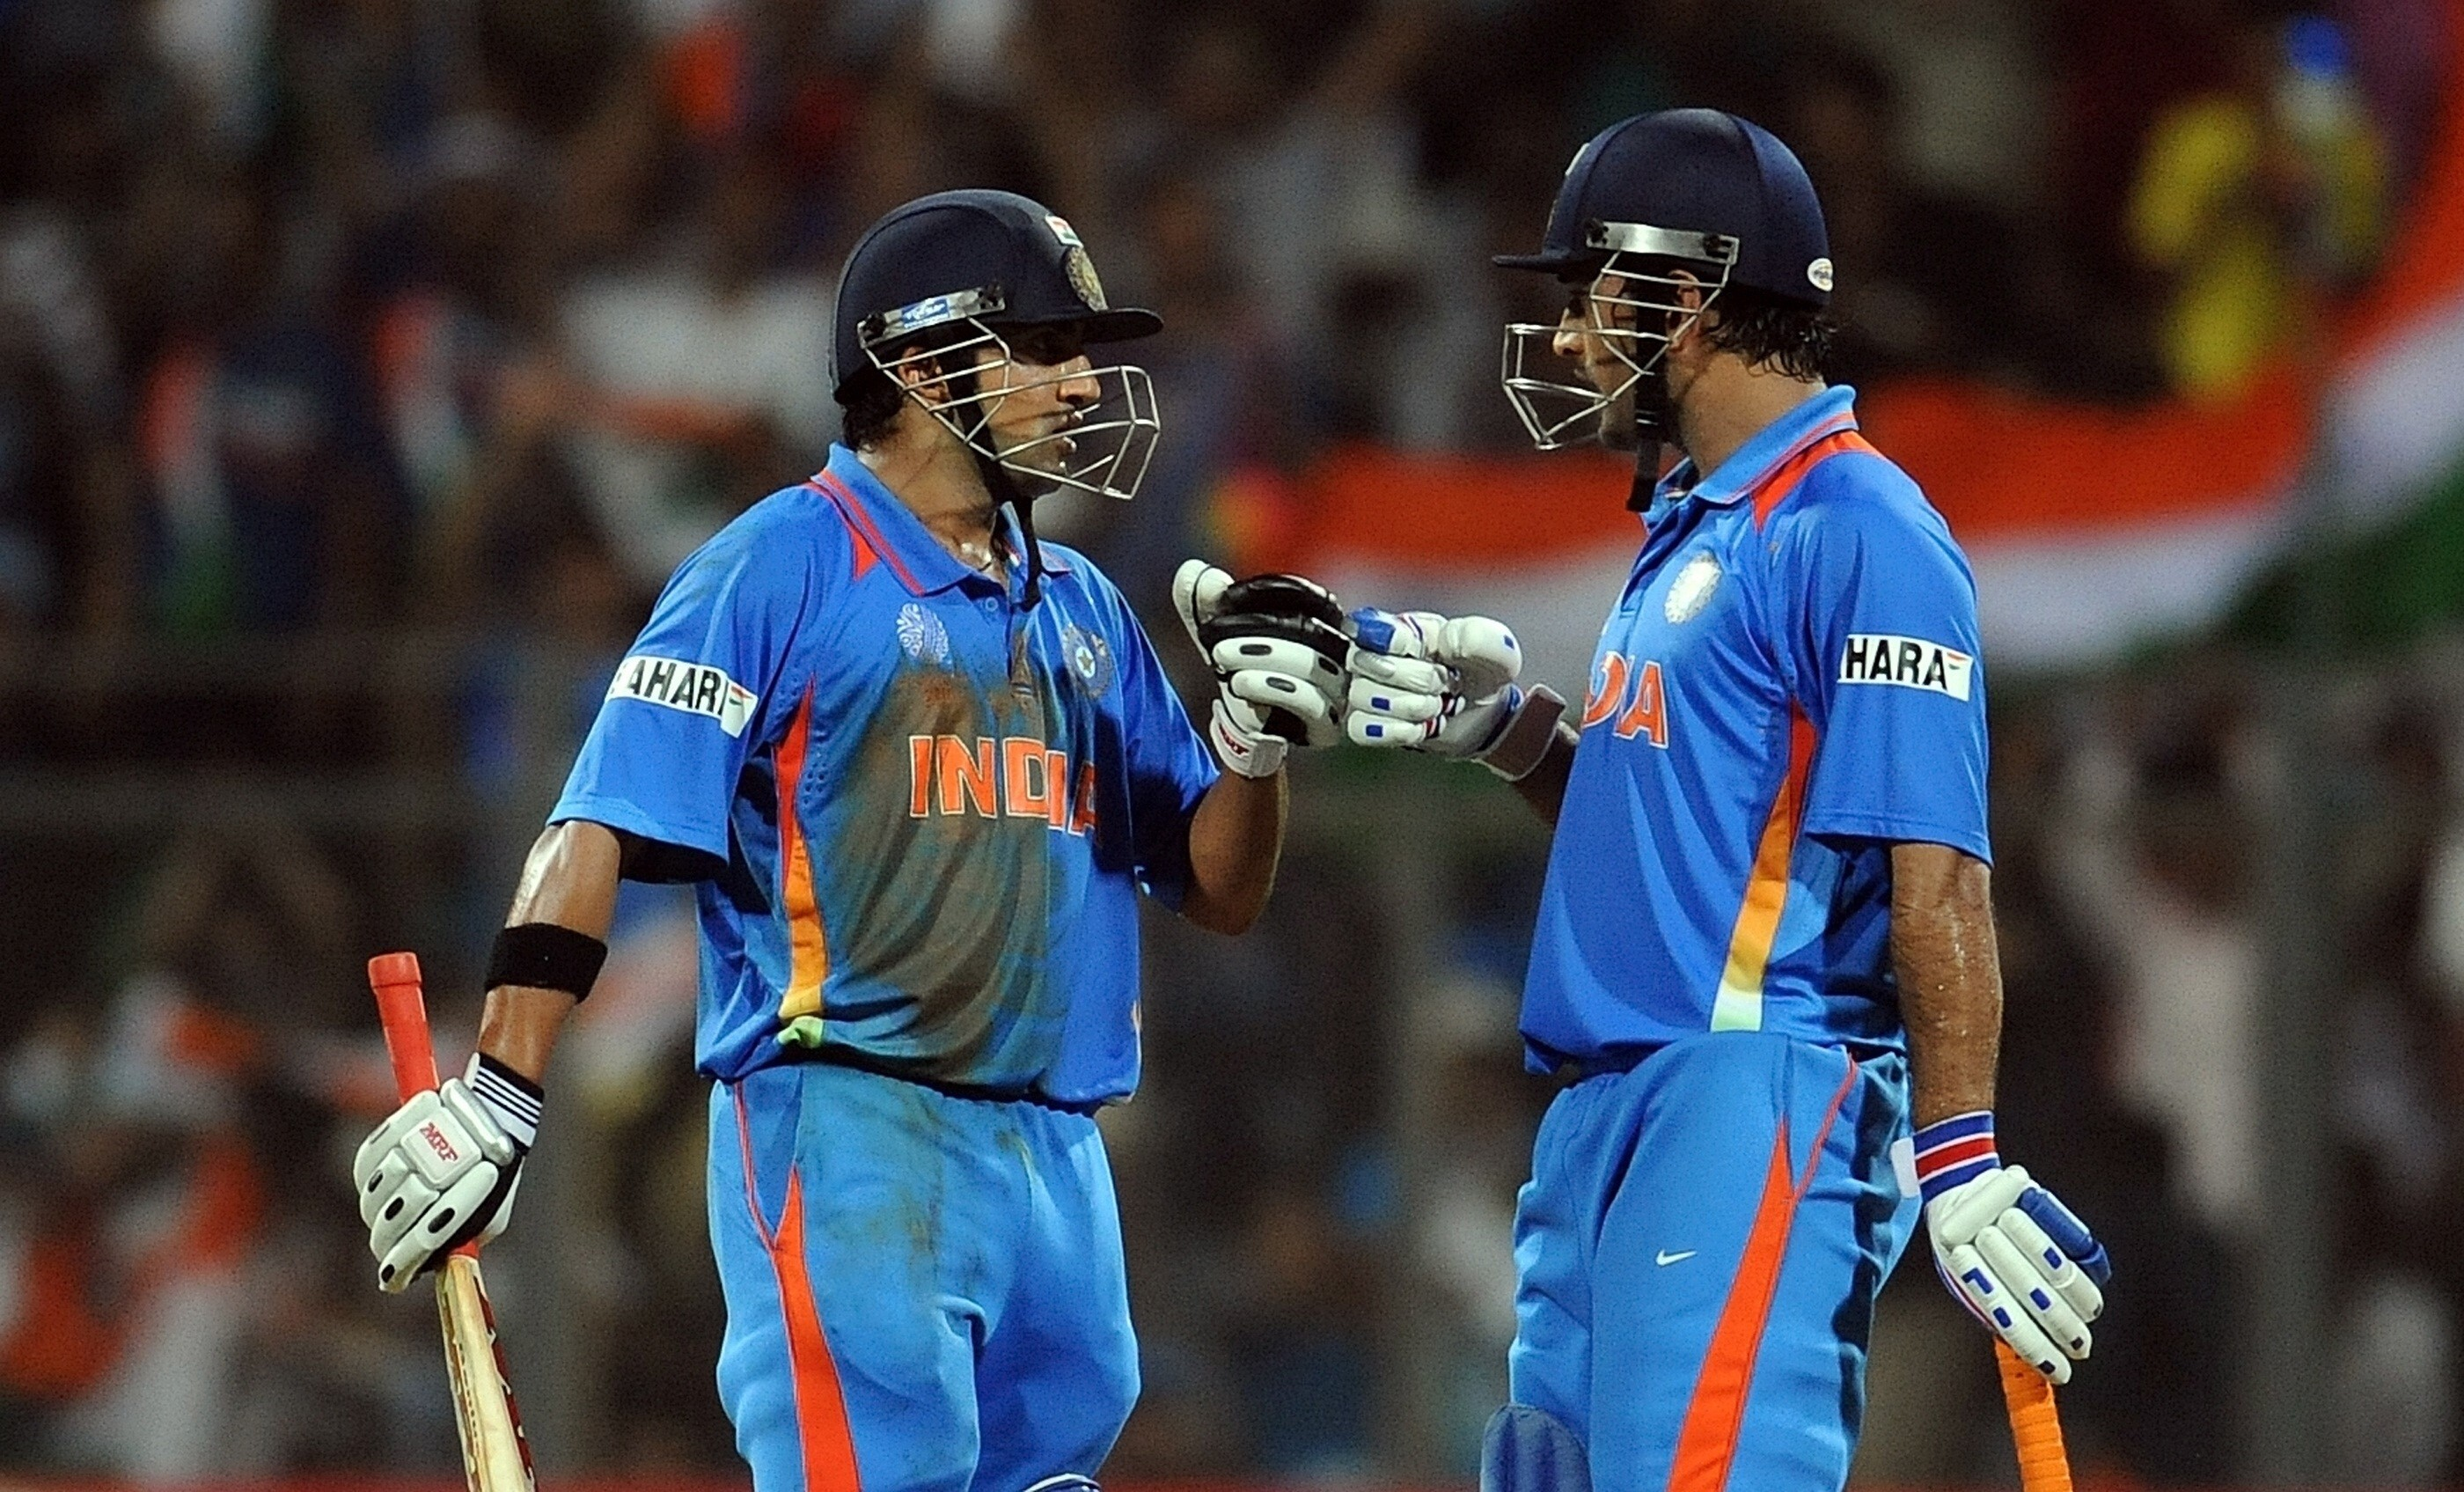 Wallpaper download cricket - Mahendra Singh Dhoni And Gautam Gambhir In World Cup Final Match Cricket Wallpapers